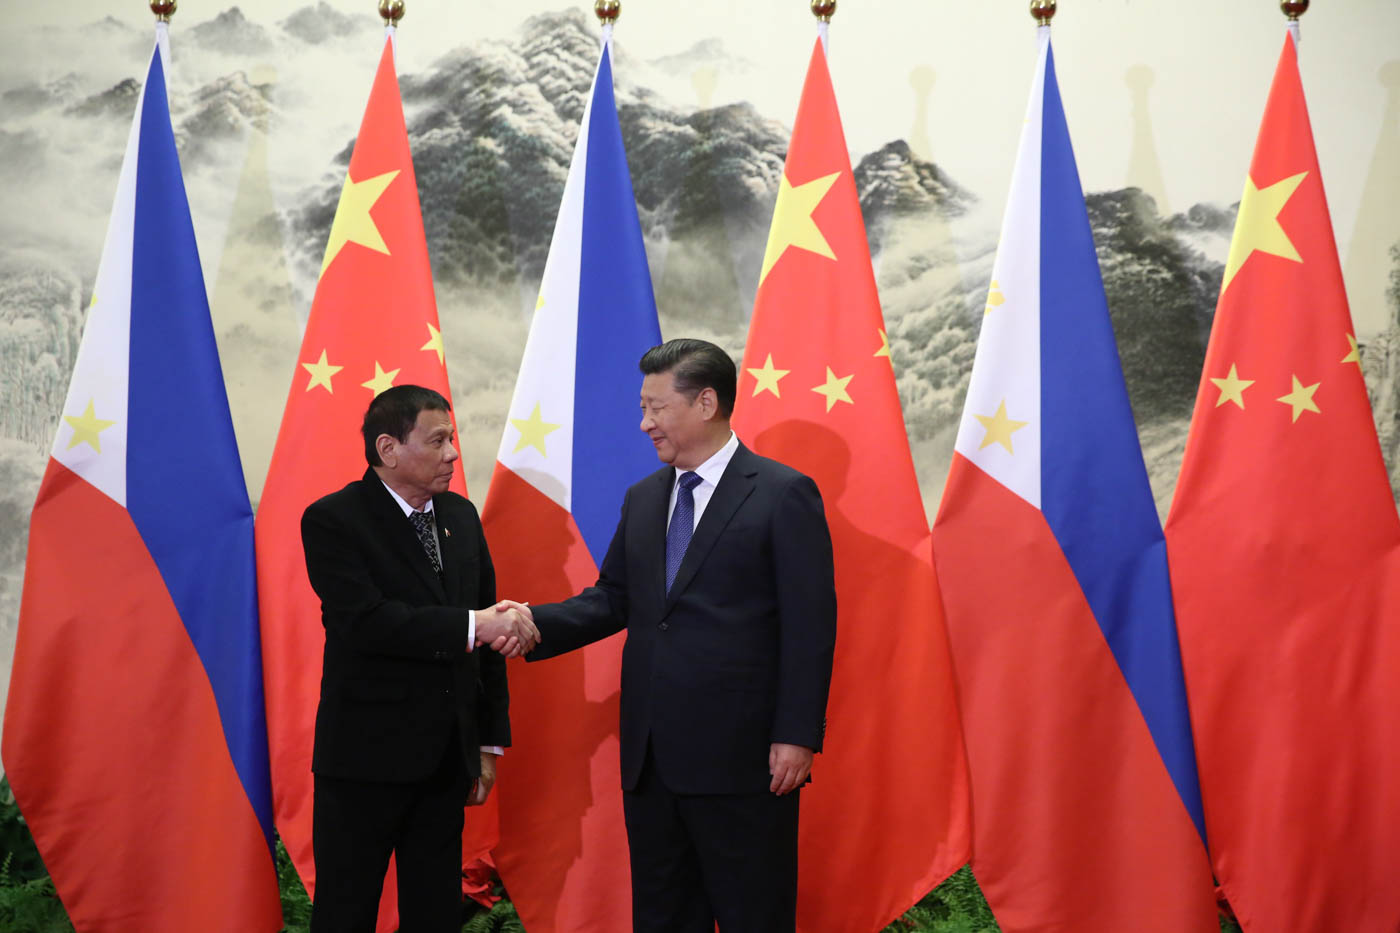 President Rodrigo Duterte and People's Republic of China President Xi Jinping shake hands prior to their bilateral meetings at the Great Hall of the People in Beijing on October 20. (King Rodriguez/PPD)